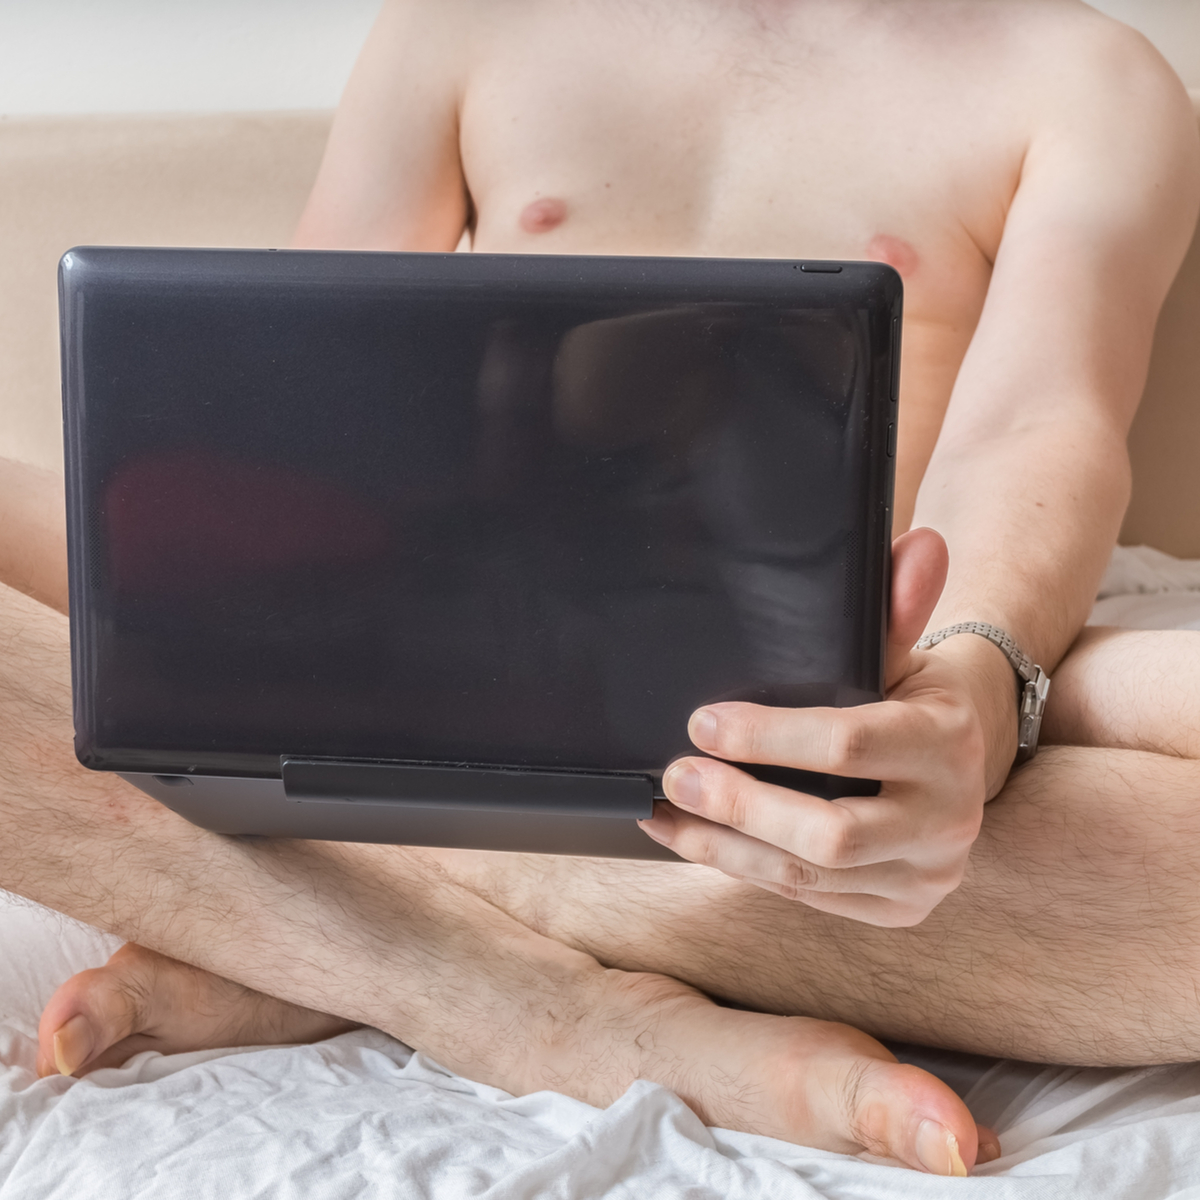 Child pornography prosecutions on the rise